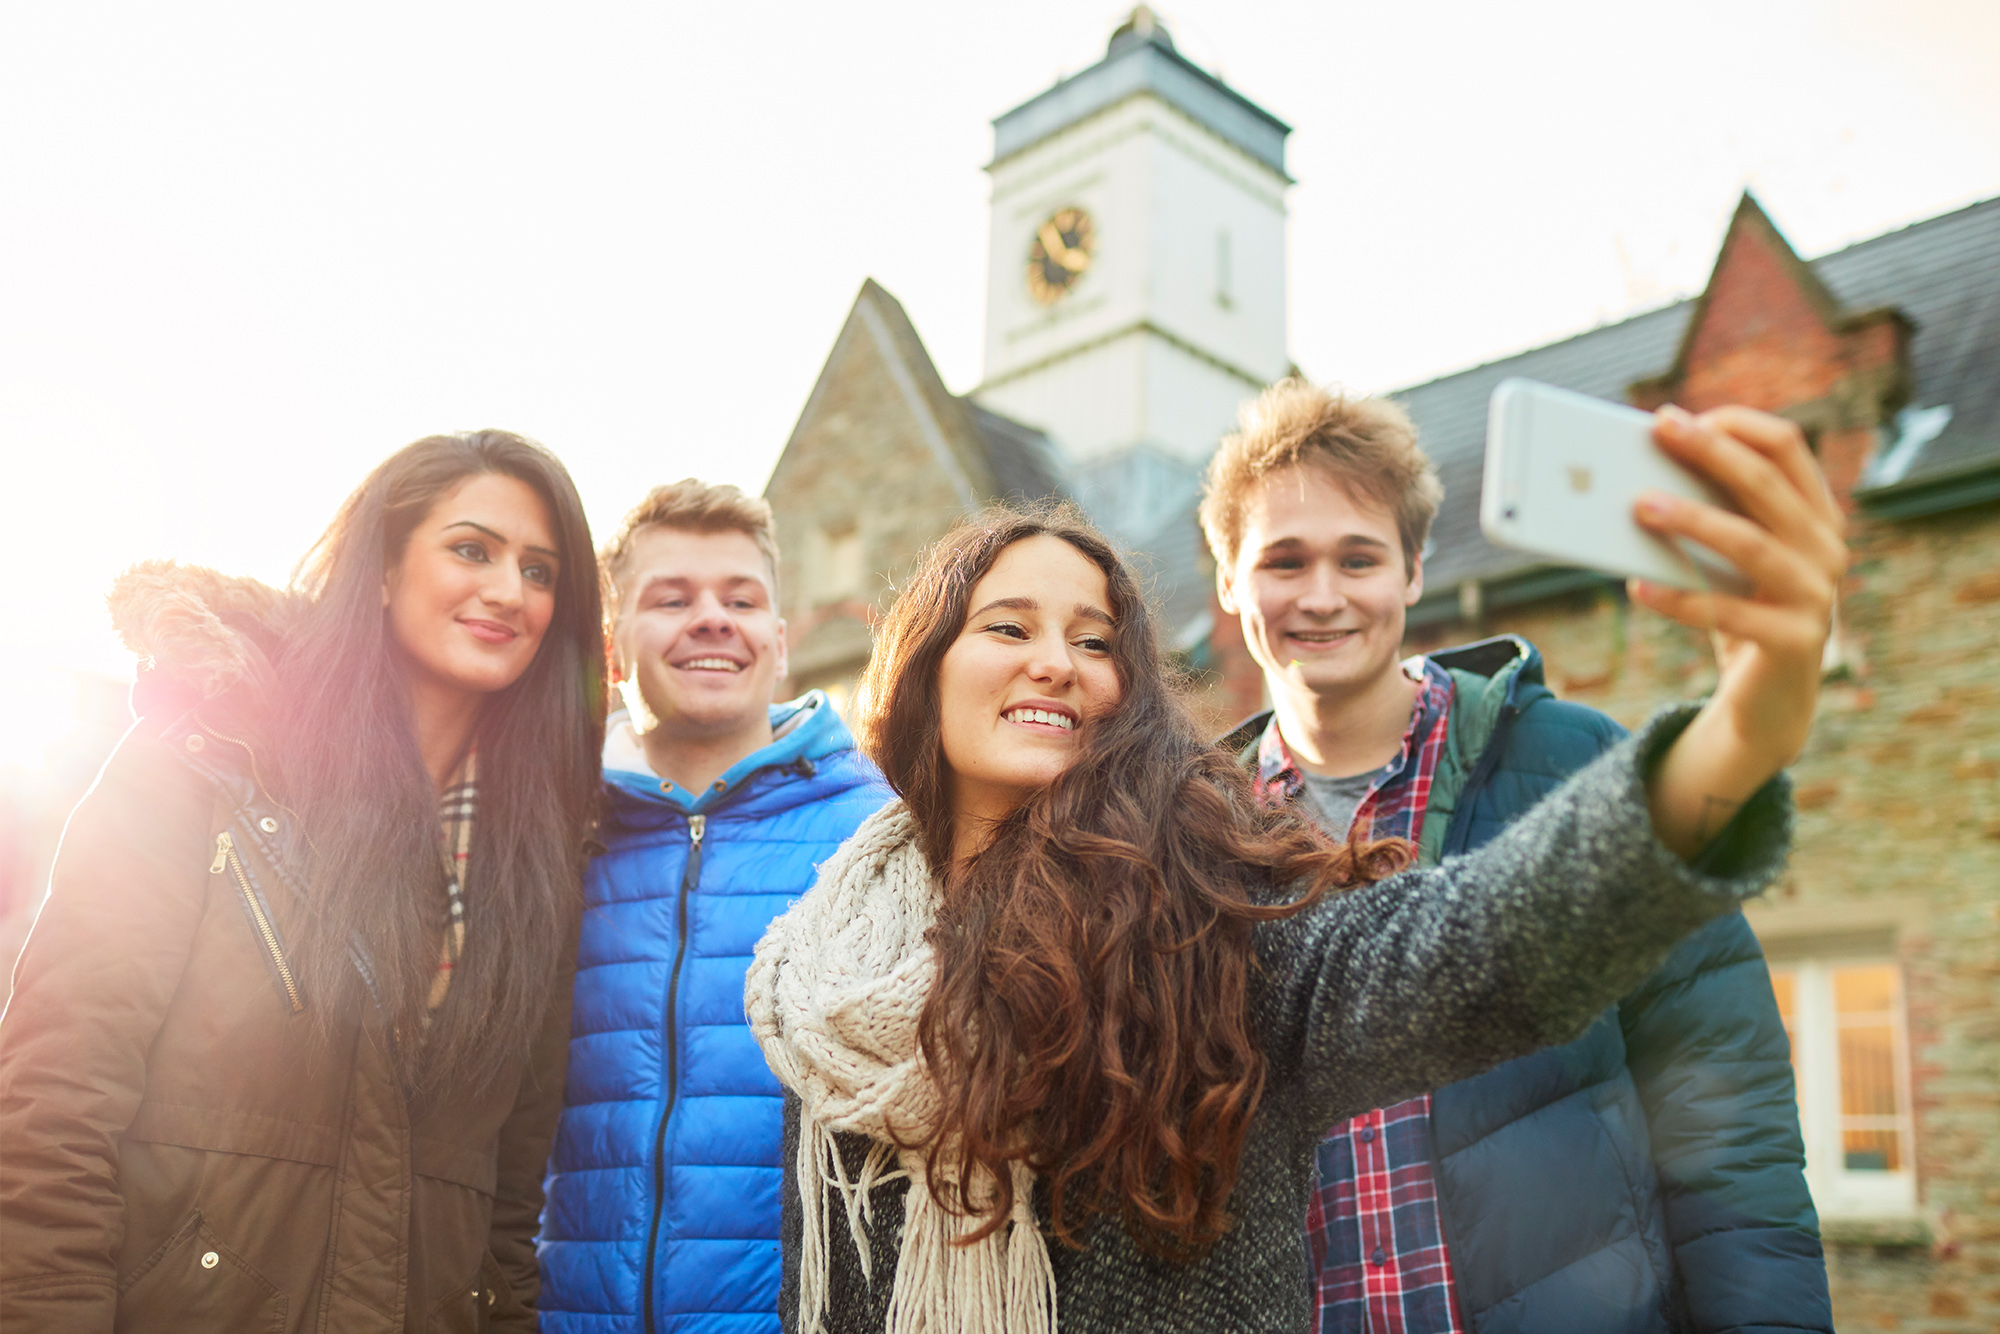 Swansea University students smiling and taking a selfie